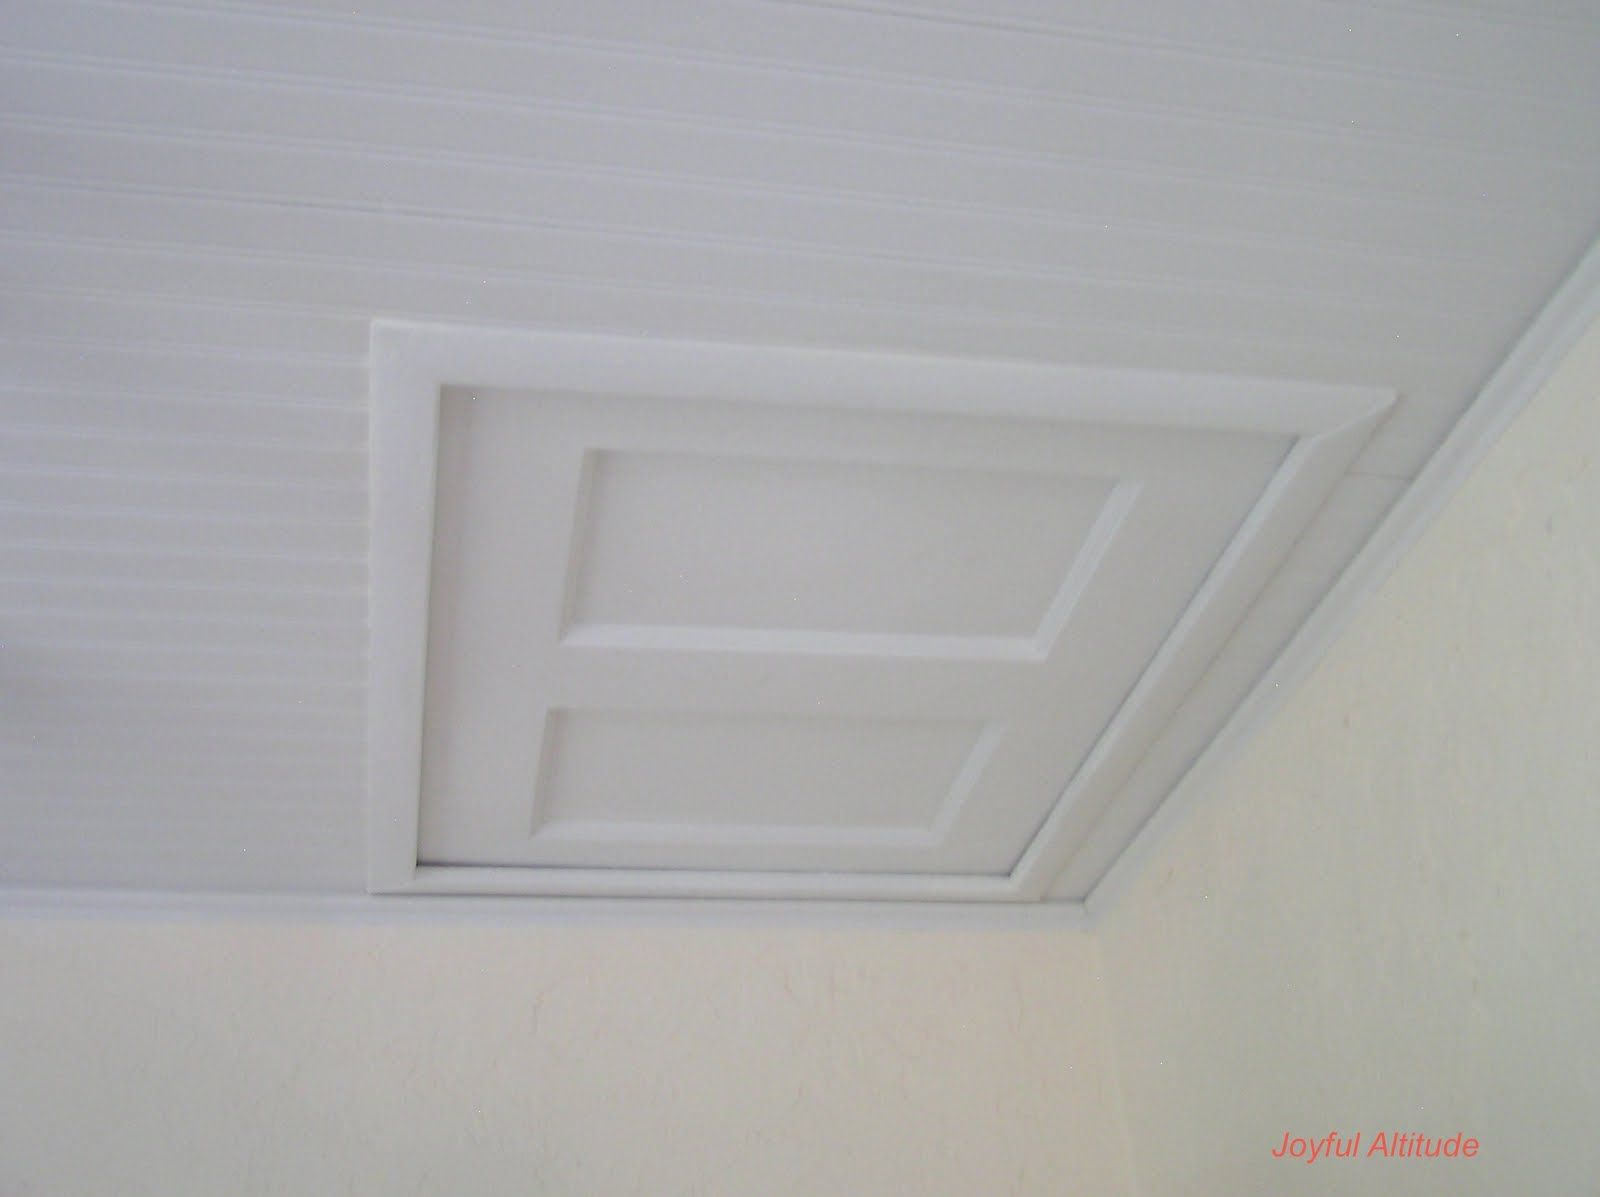 Marvelous Attic Access Panel 2 Ceiling Attic Access Doors